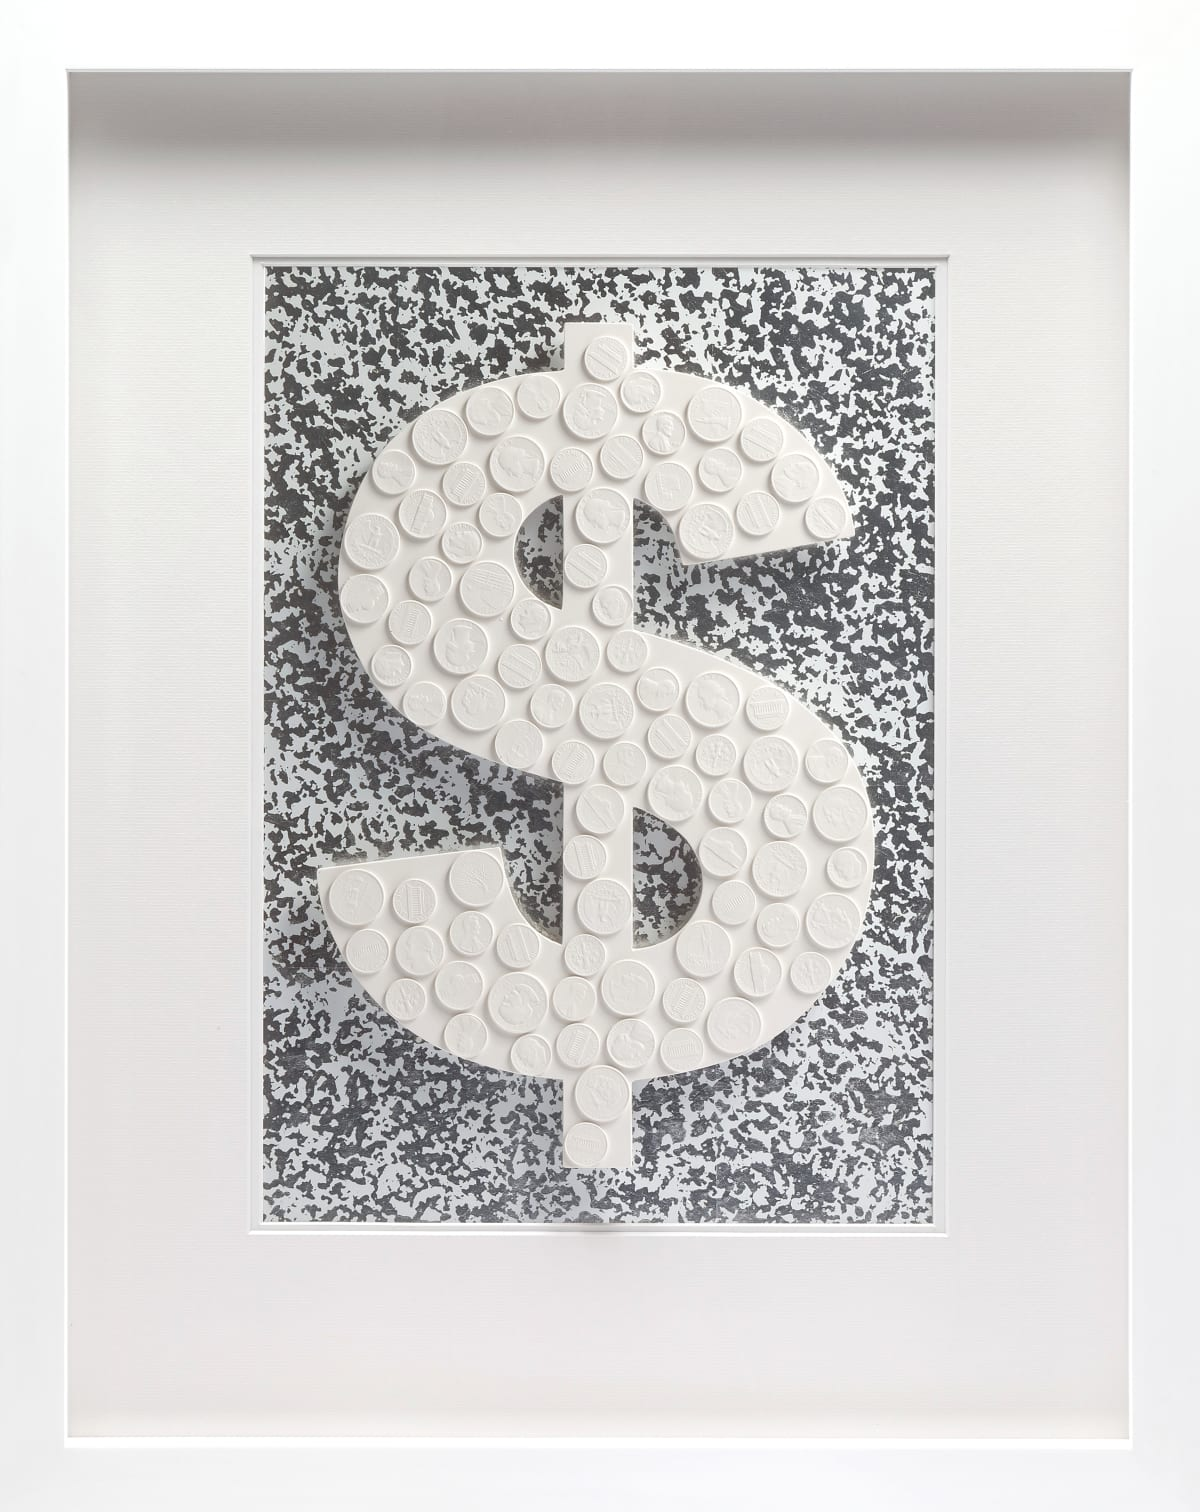 Tom Martin Show Me America Plaster and silver leaf behind perspex 65 x 51.5 cm Edition of 5